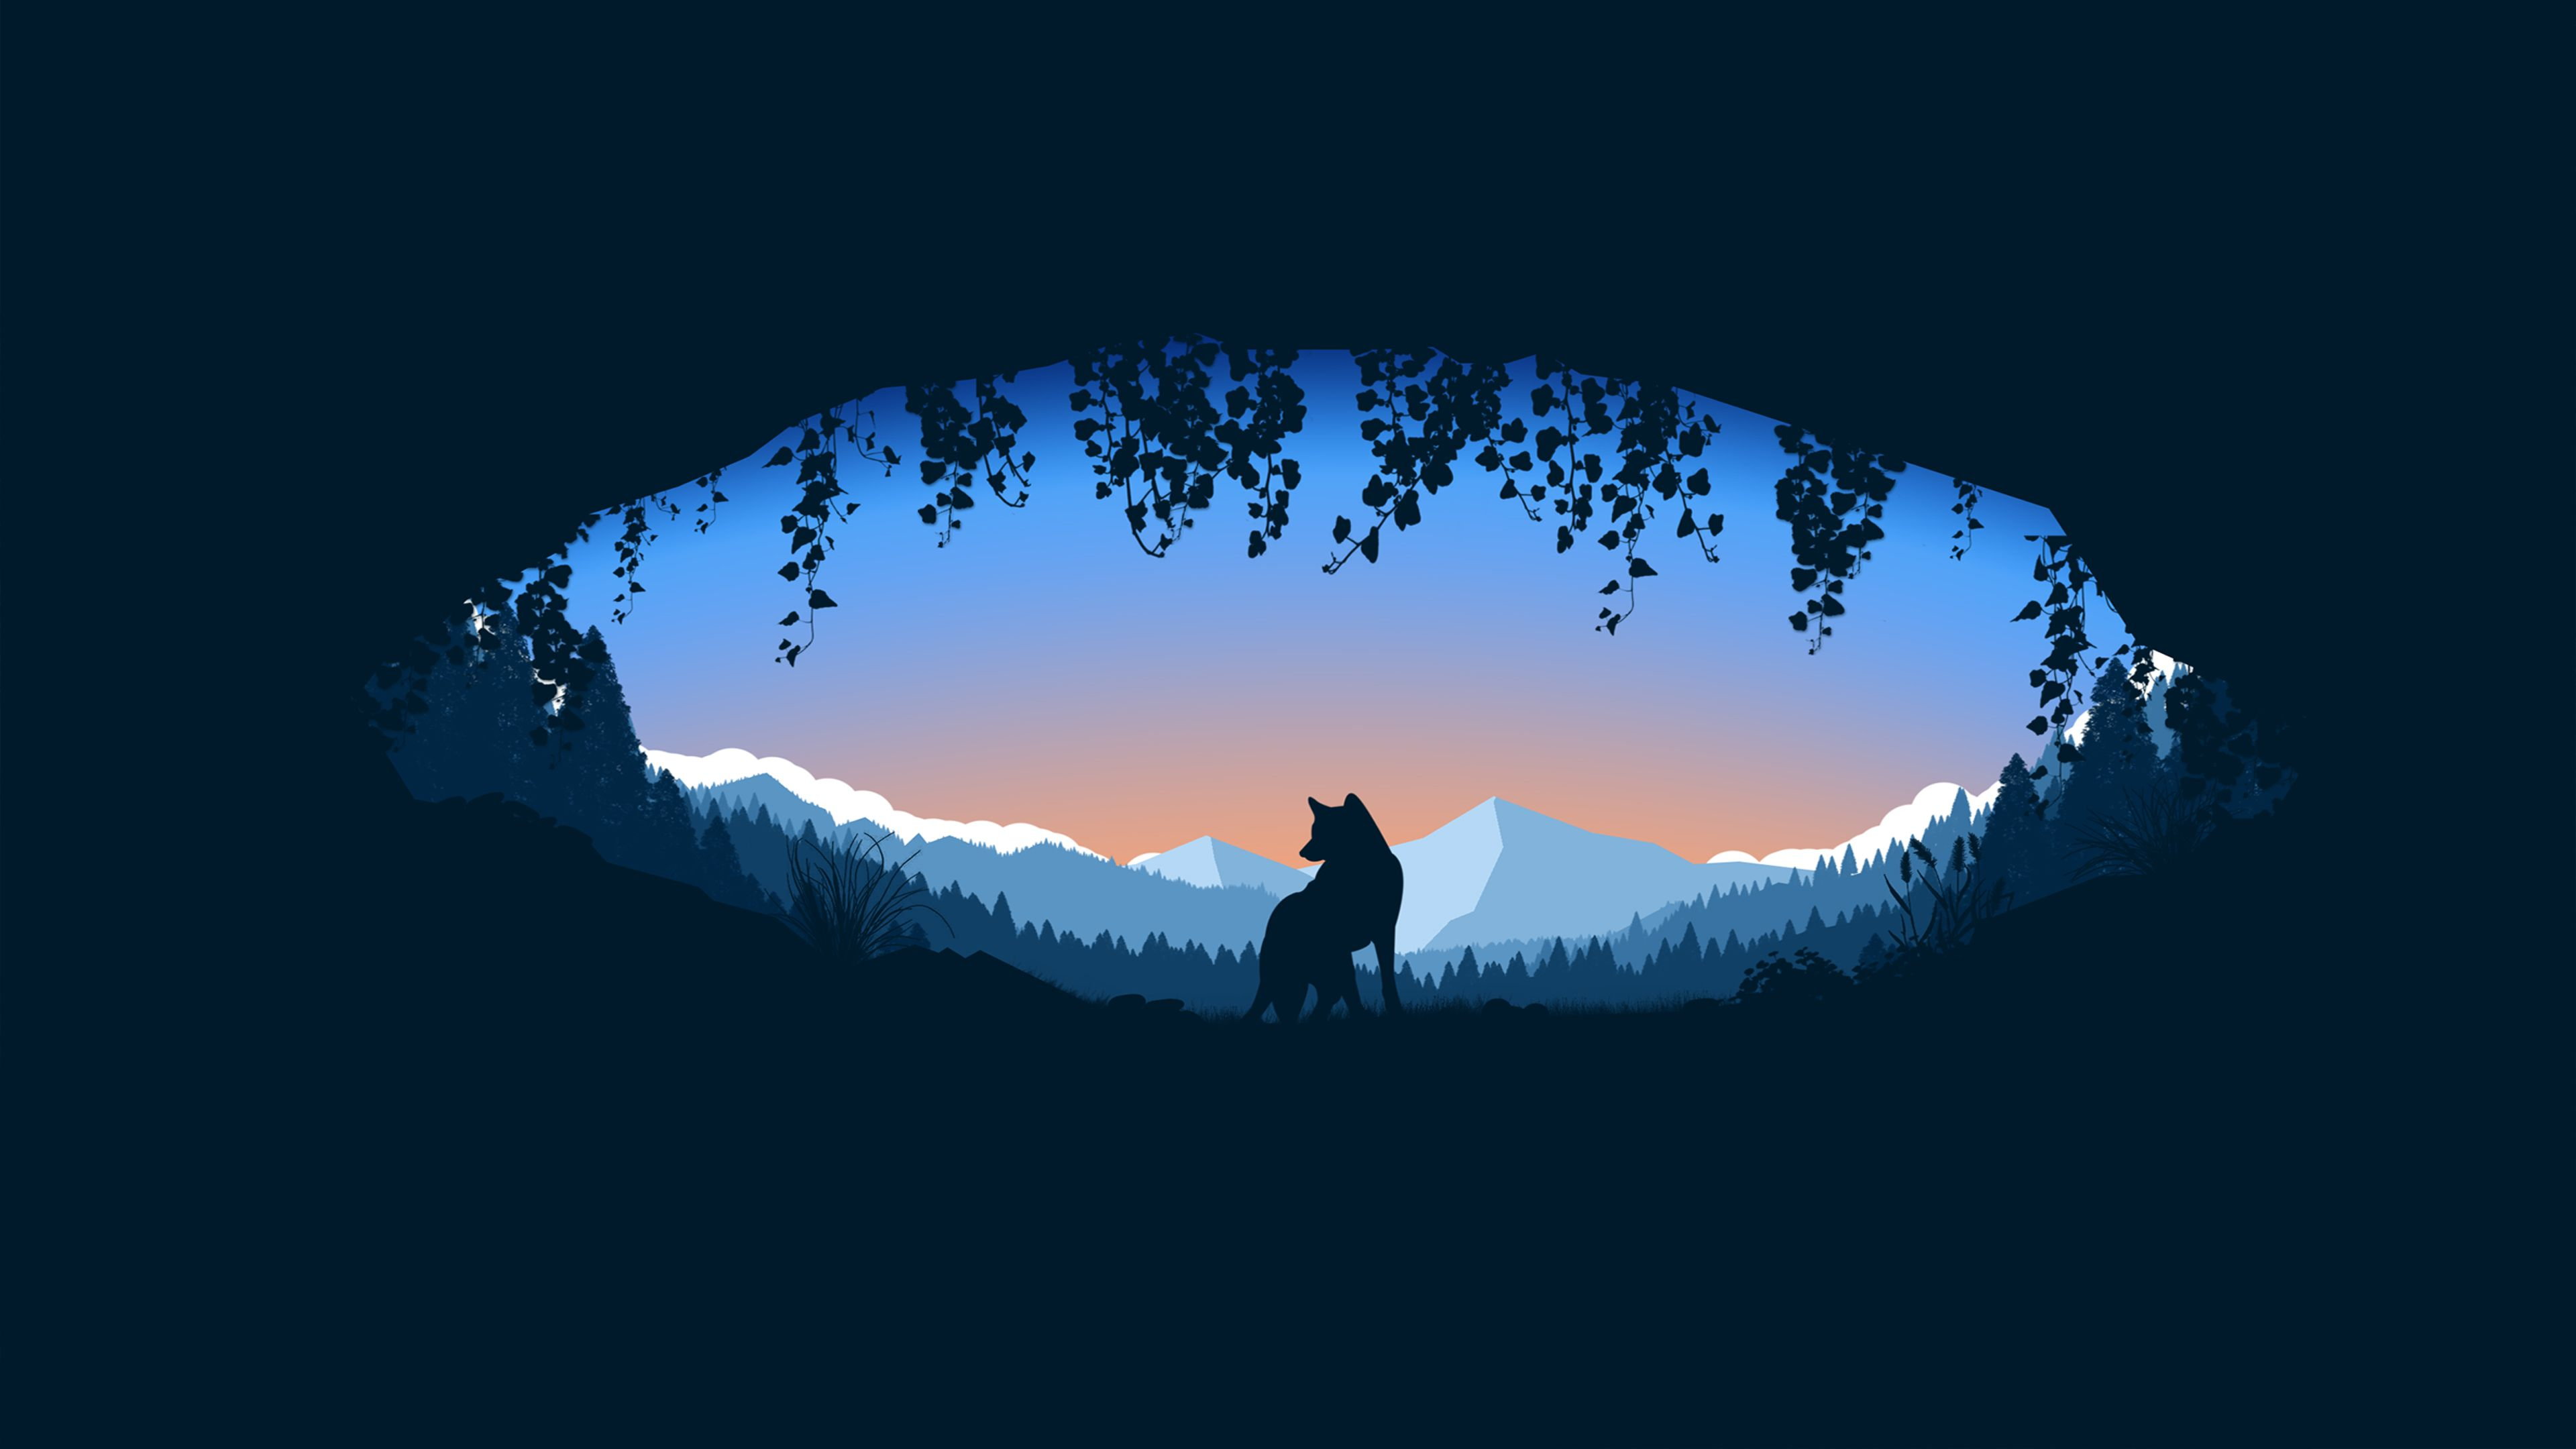 Animated Wolf Cave Minimalist 3840 X 2160 Minimalist Wallpaper Wolf Wallpaper Art Wallpaper